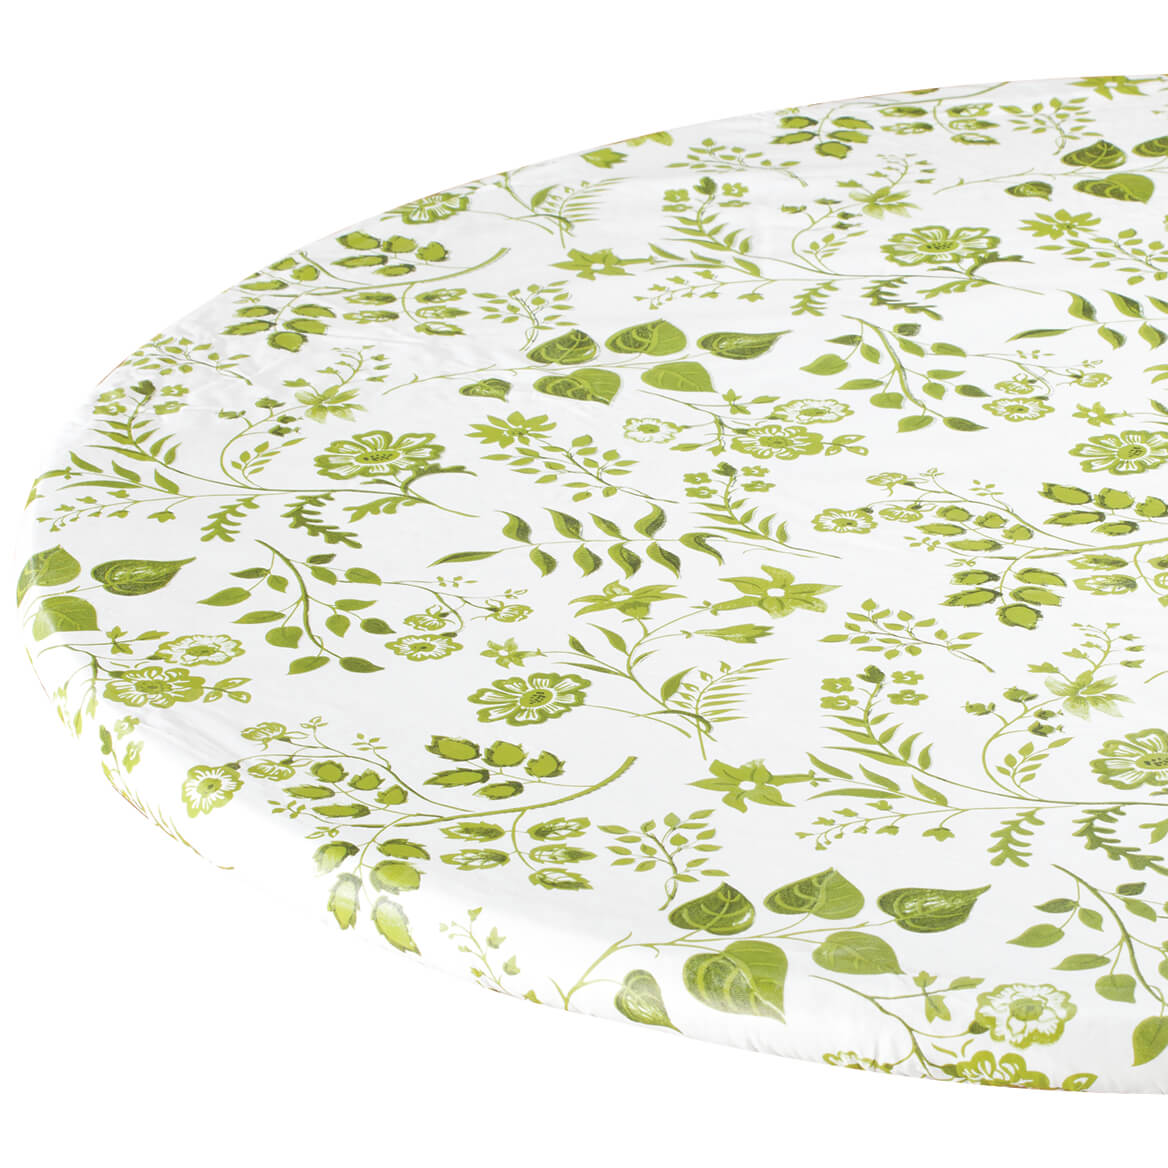 Flowing Flowers Vinyl Elasticized Tablecover By Home-Style Kitchen™-355908